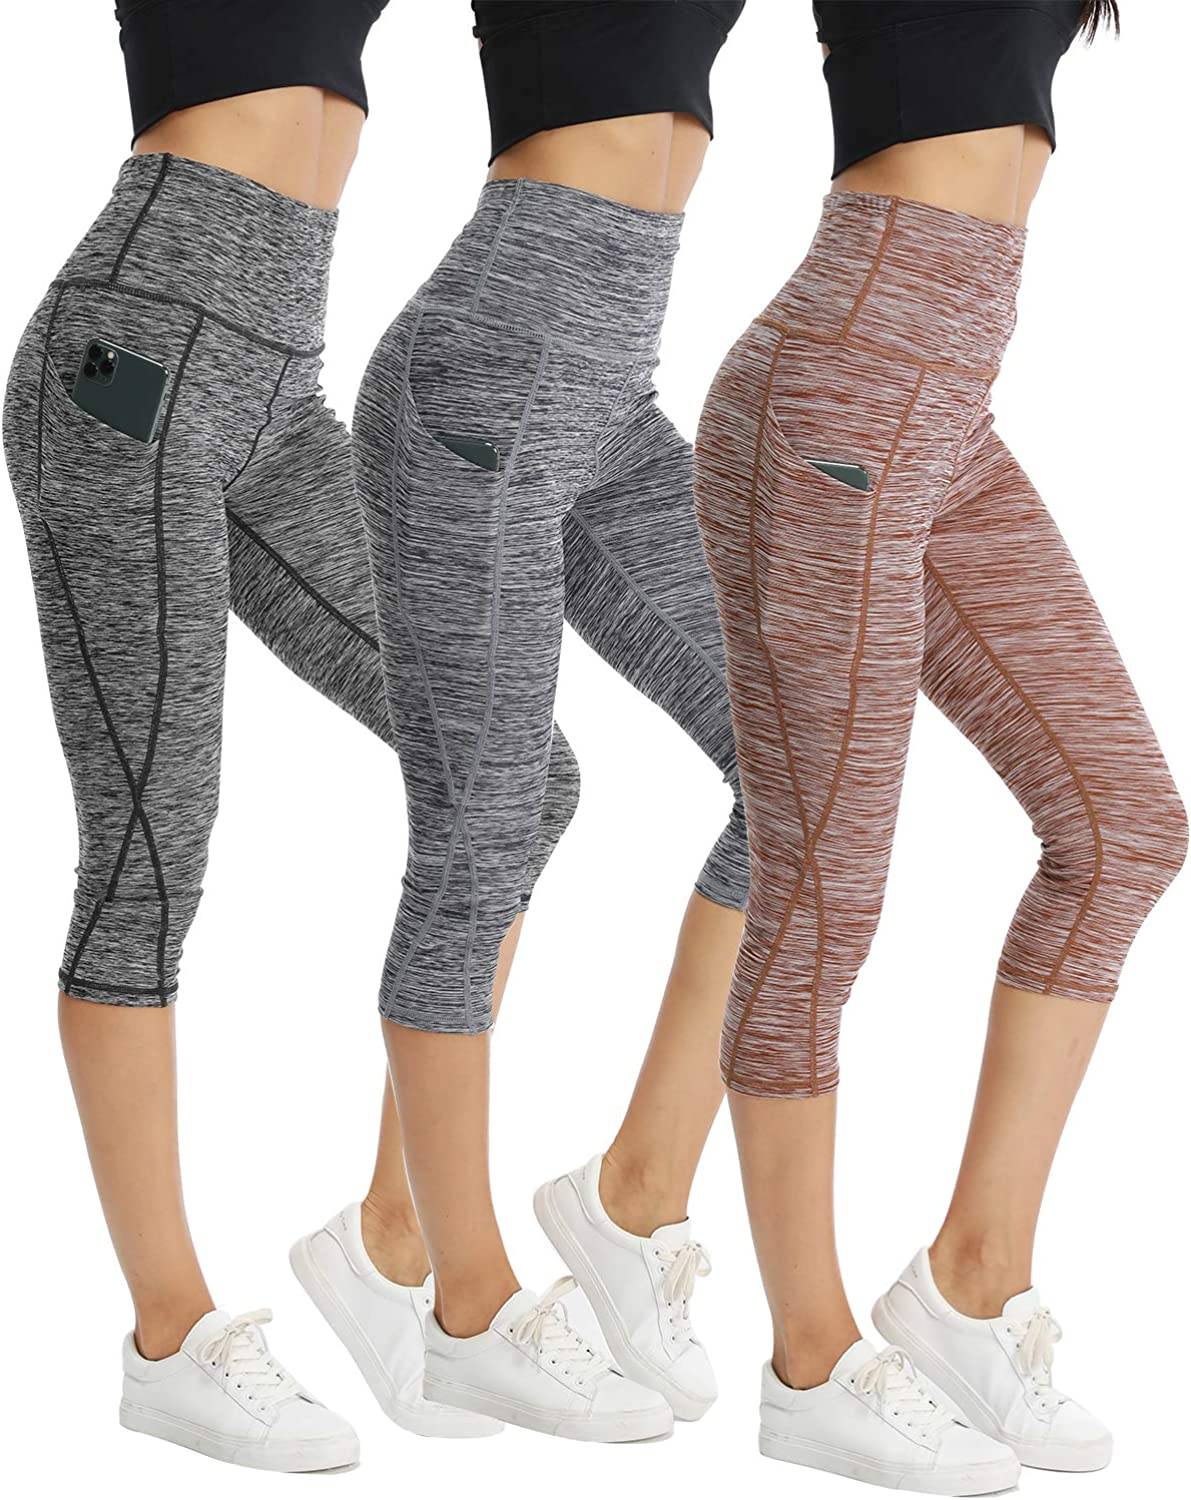 CongYee 25% OFF Sport Women's Yoga Capris W Pants for Today's only Control Tummy